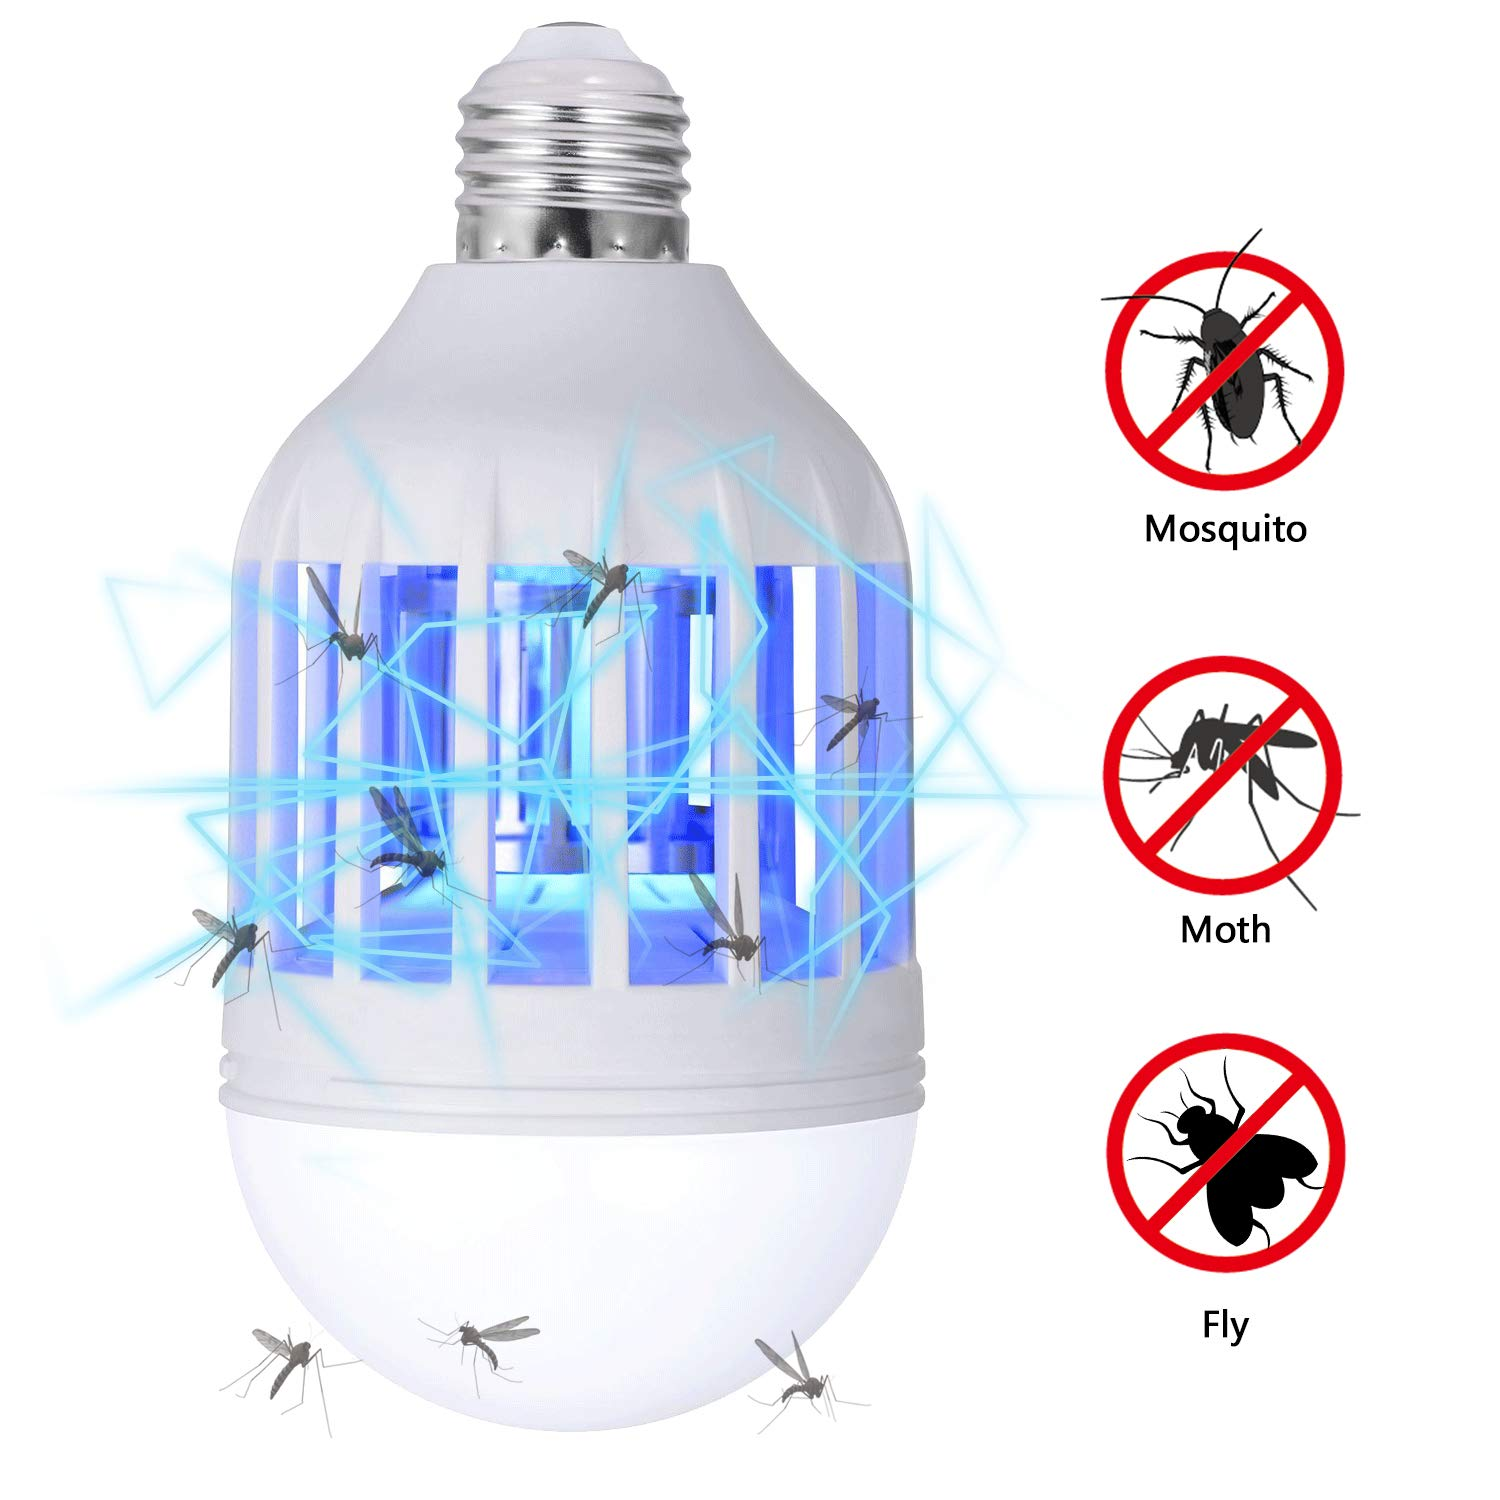 GLOUE Bug Zapper Light Bulb, 2 in 1 Mosquito Killer Lamp UV Led Electronic Insect & Fly Killer by GLOUE